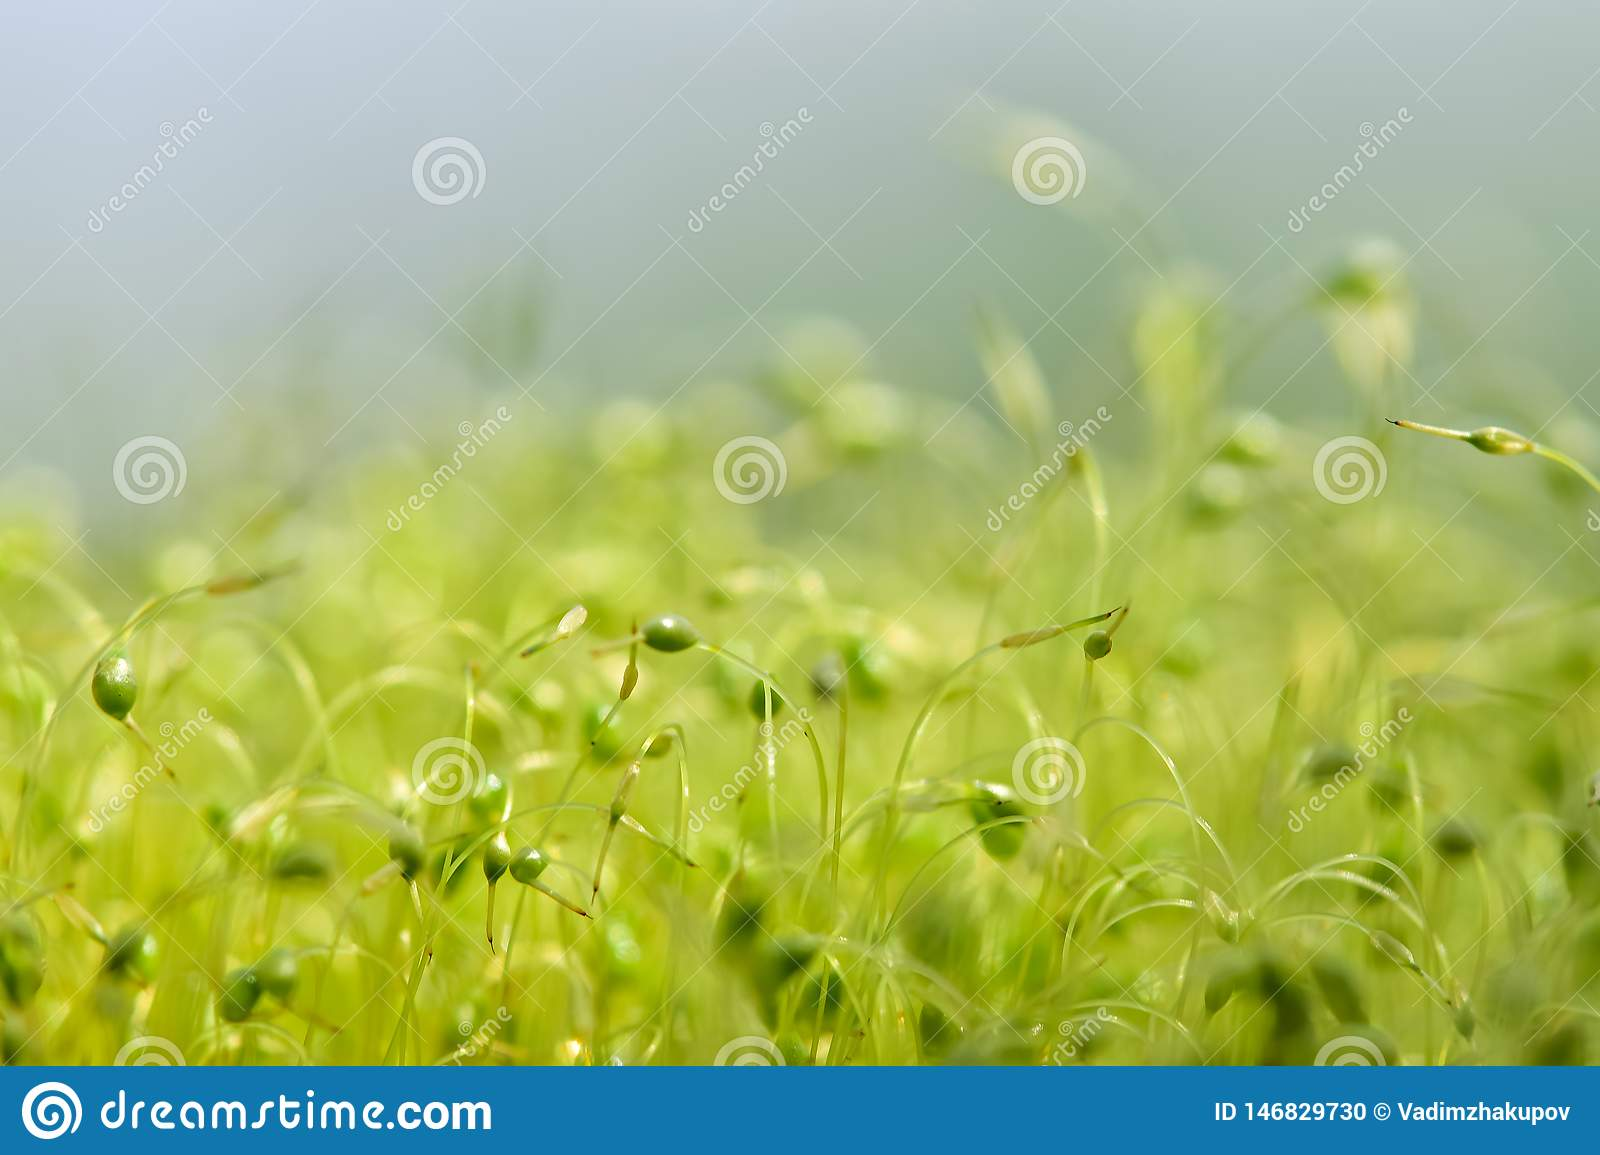 Soft focused close-up shot of green moss seeds with bokeh, blurred shining light